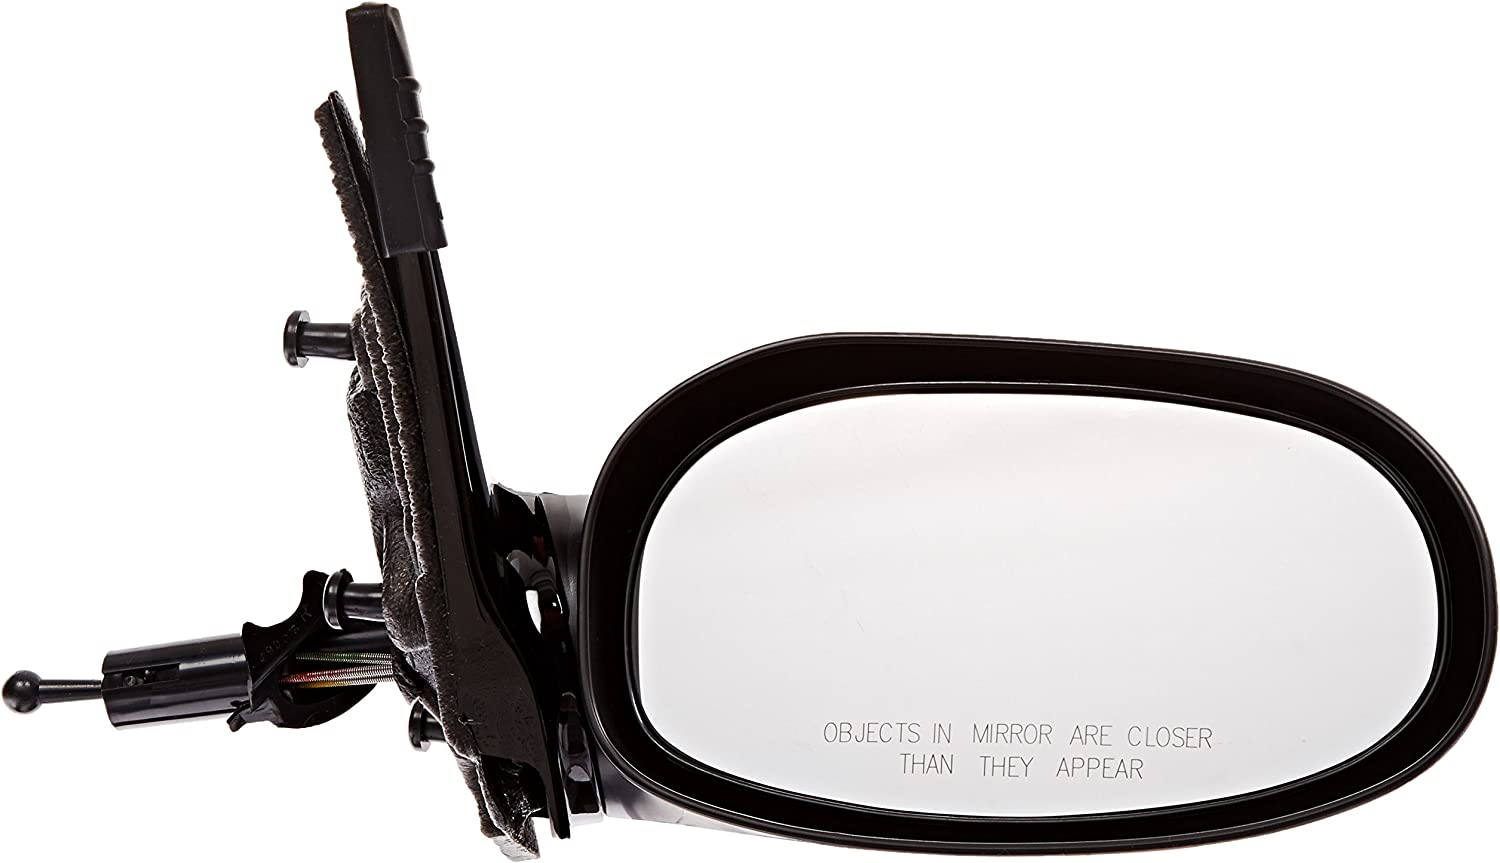 Parts Link # GM1321267 Passenger Side Right Rear View Mirror Replacement for Saturn Lon Sedan 03-07 OE:22726679